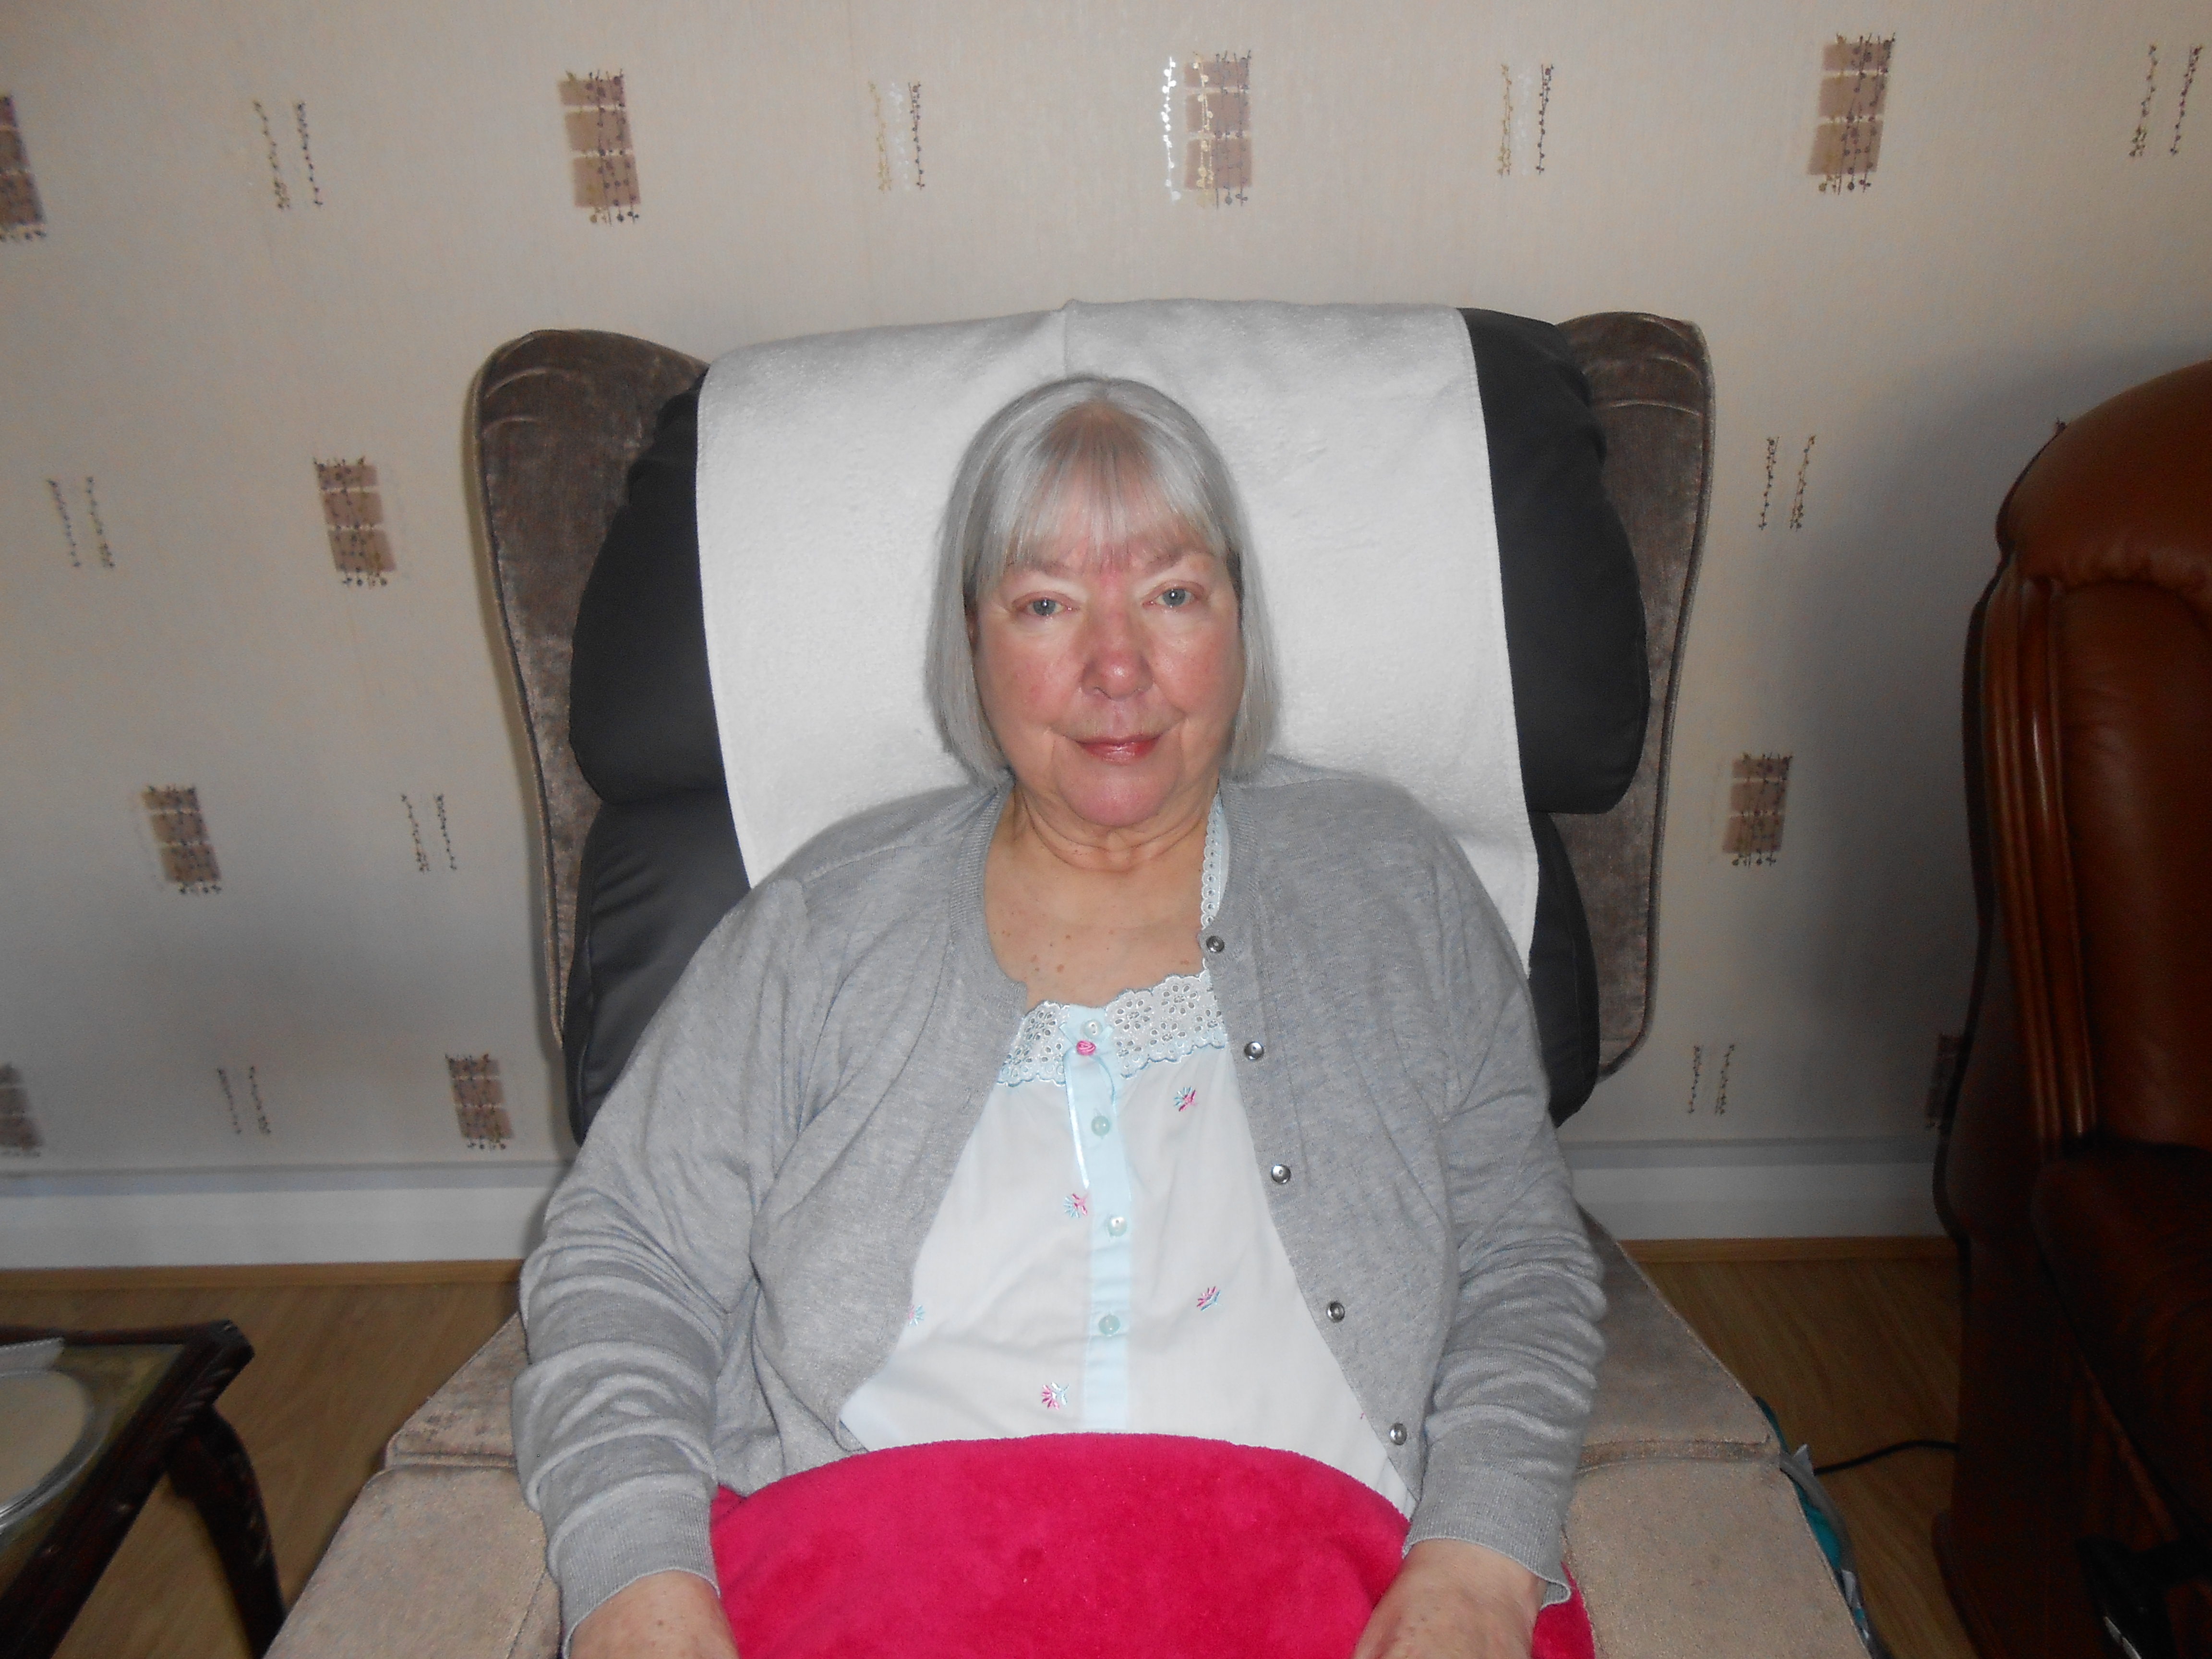 Ekamove Patient Turning System Gives Patricia A Good Night's Sleep